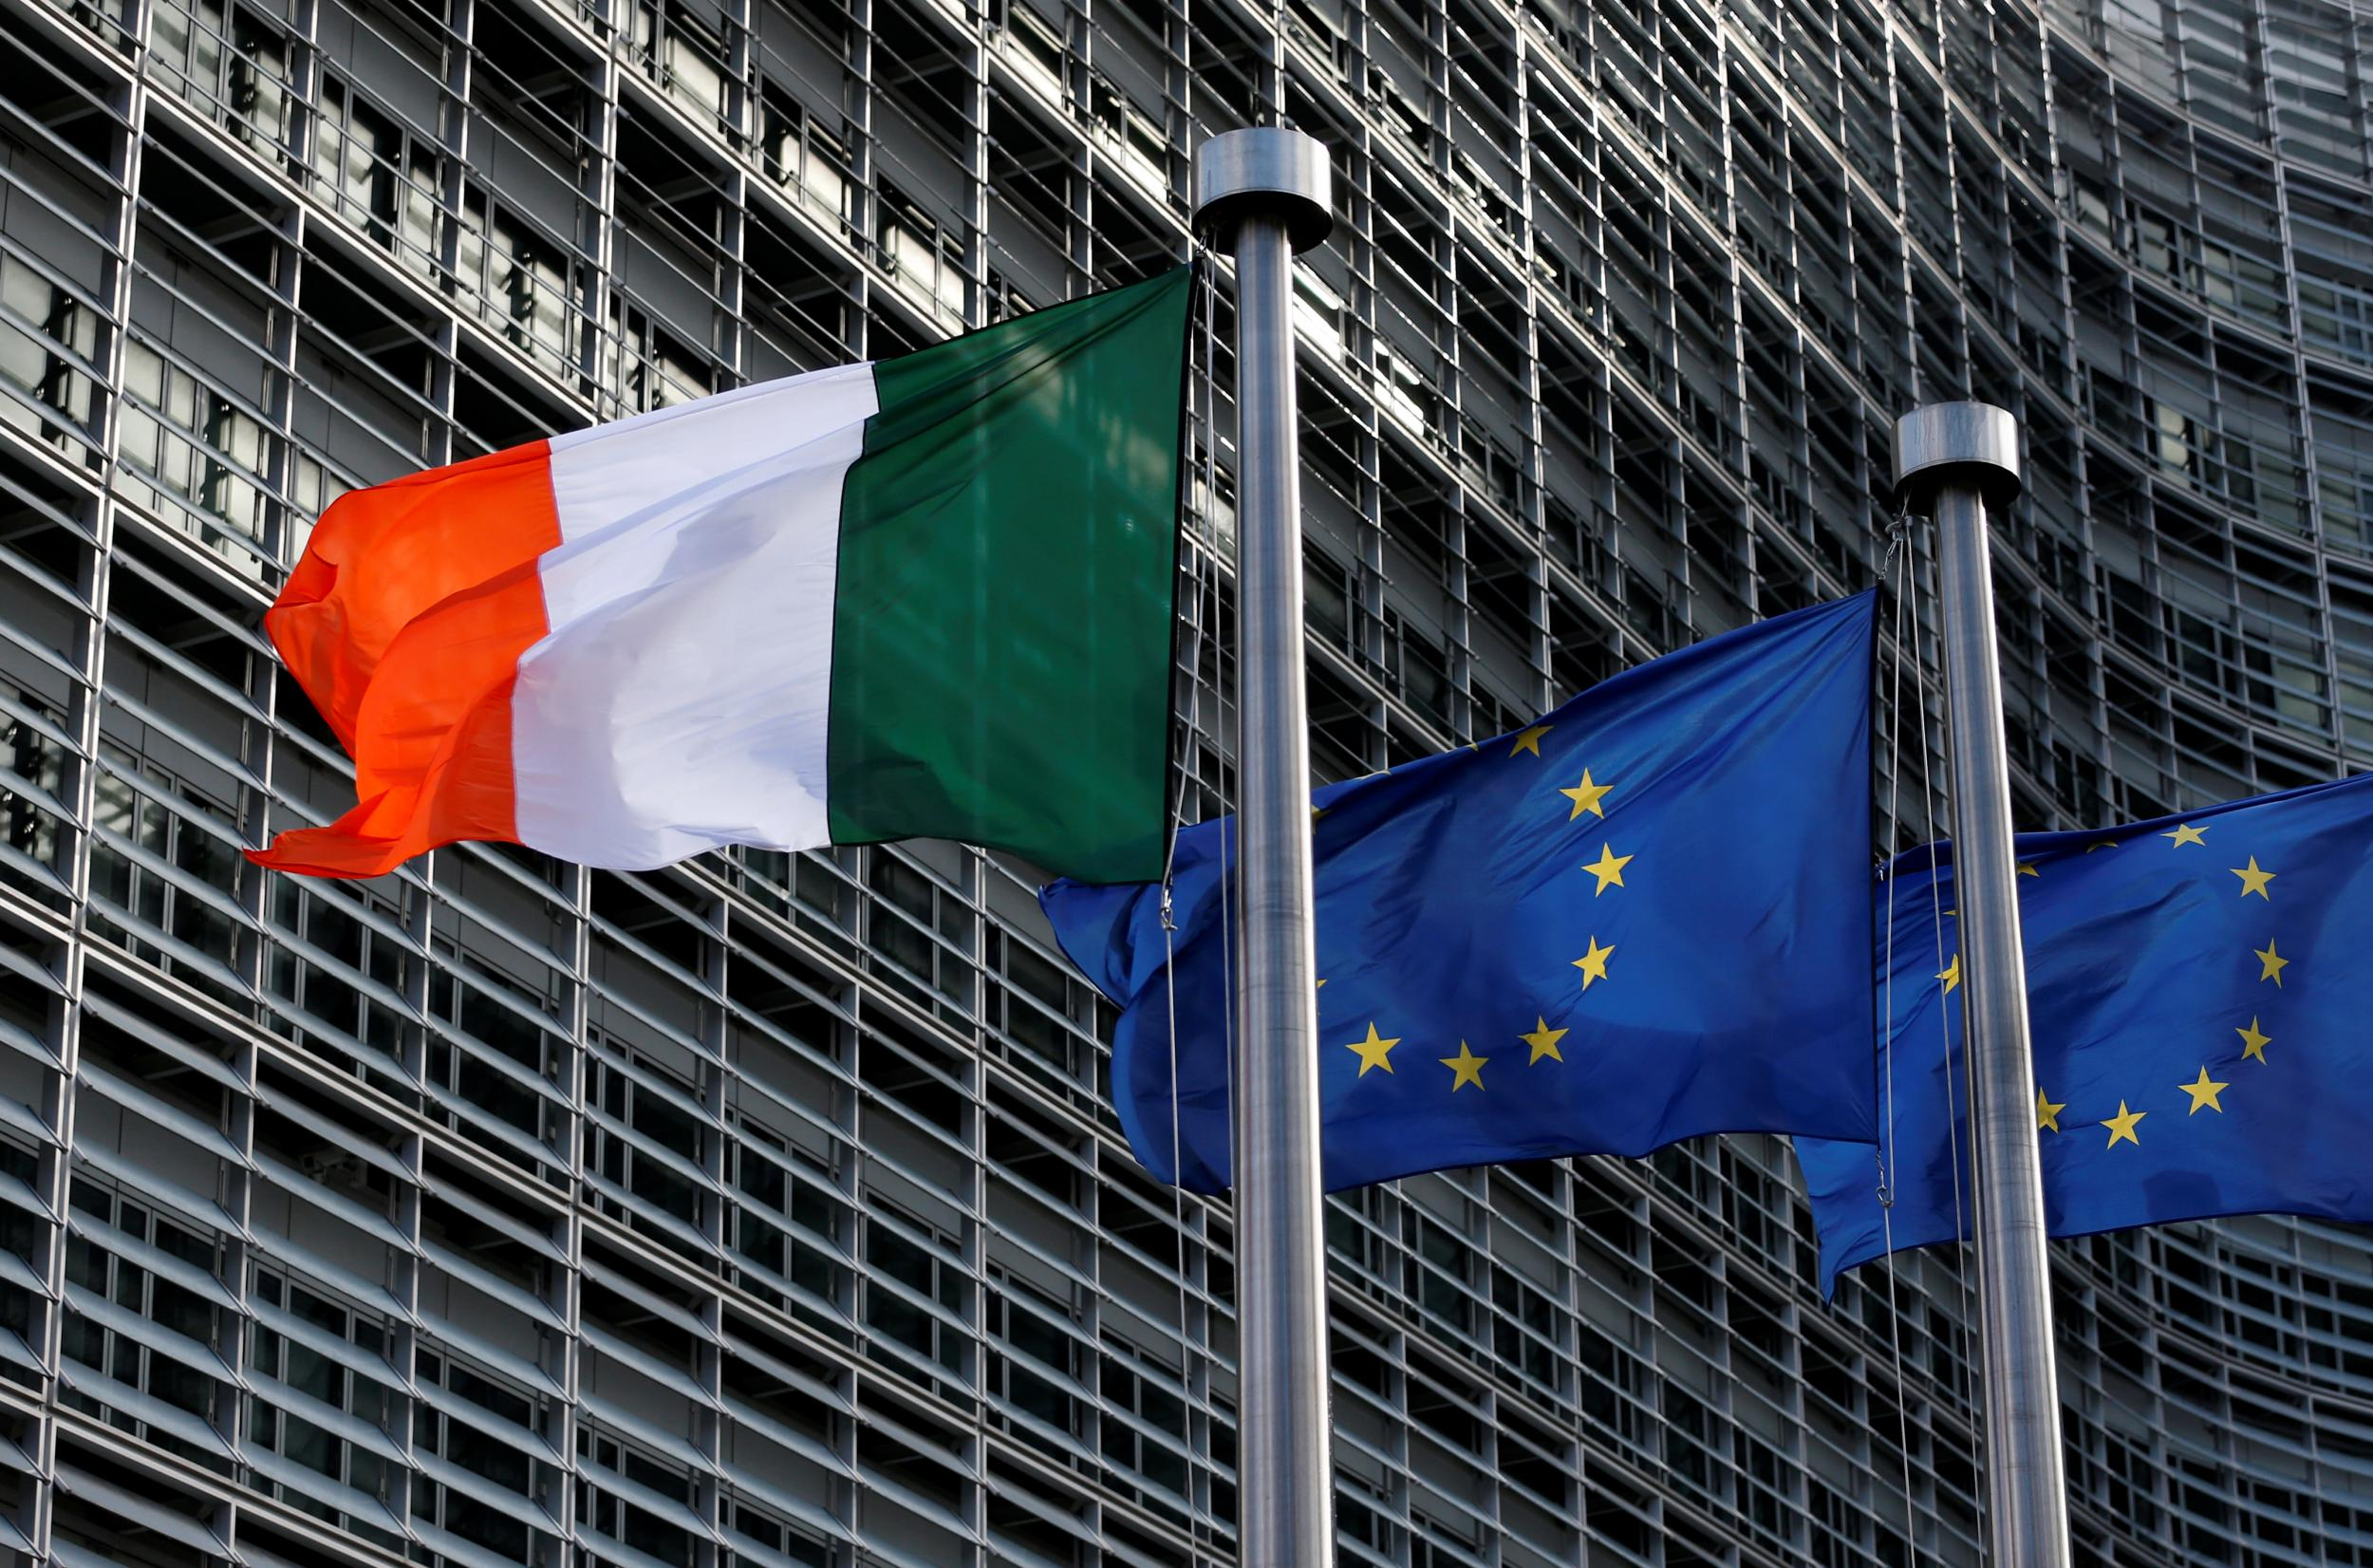 Brexit: Support for Ireland staying in the EU hits record high of 92%, latest poll shows